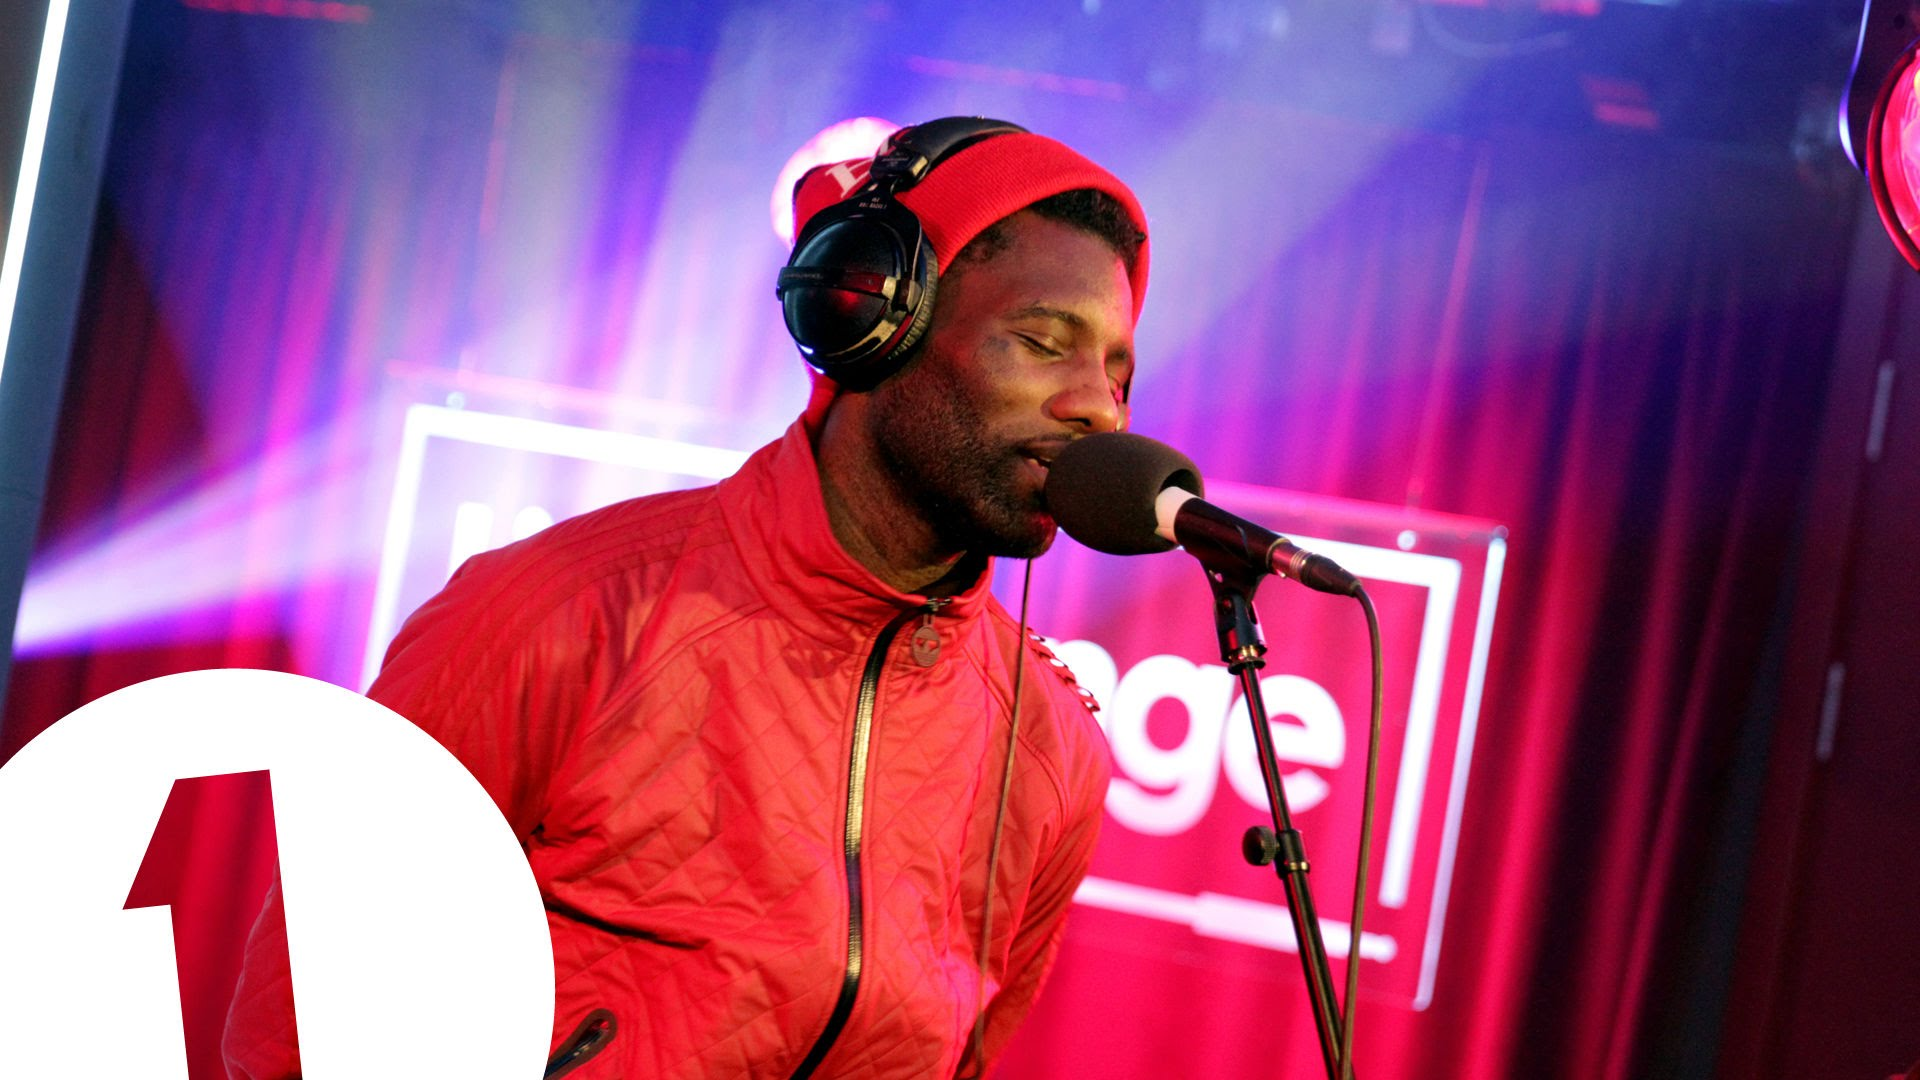 Wretch 32 covers Ed Sheeran's Thinking Out Loud in the Live